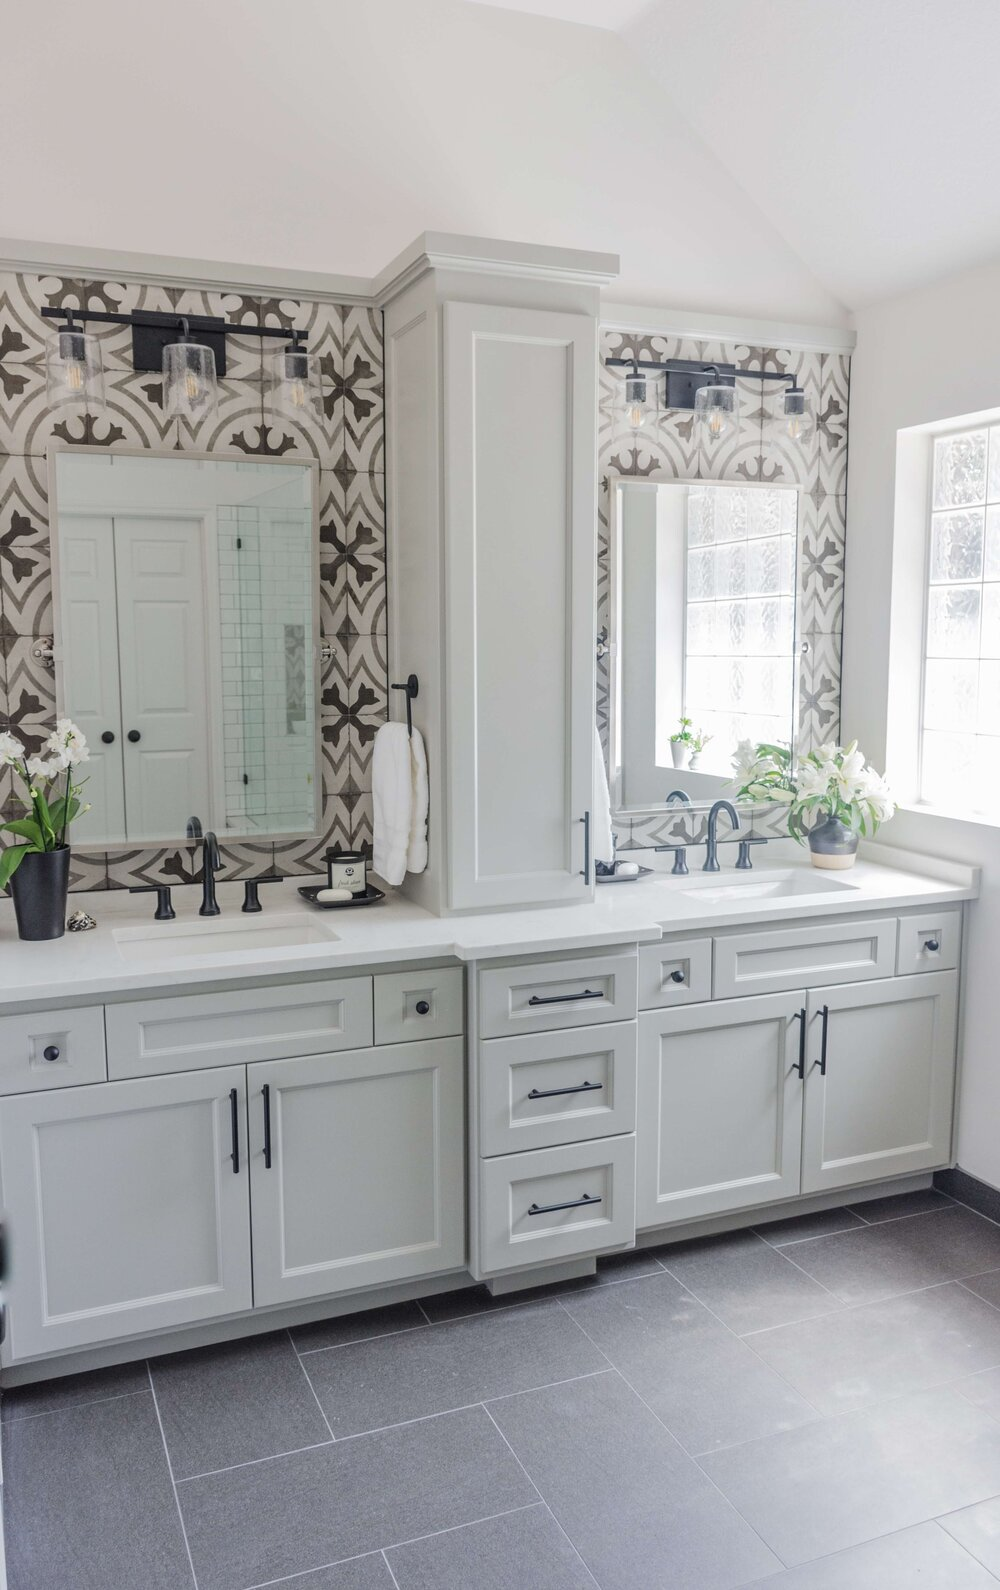 AFTER - This remodeled bathroom's double vanity is 8' wide with a tower cabinet in the middle. Carla Aston, Designer | Charles Behrend, Photographer